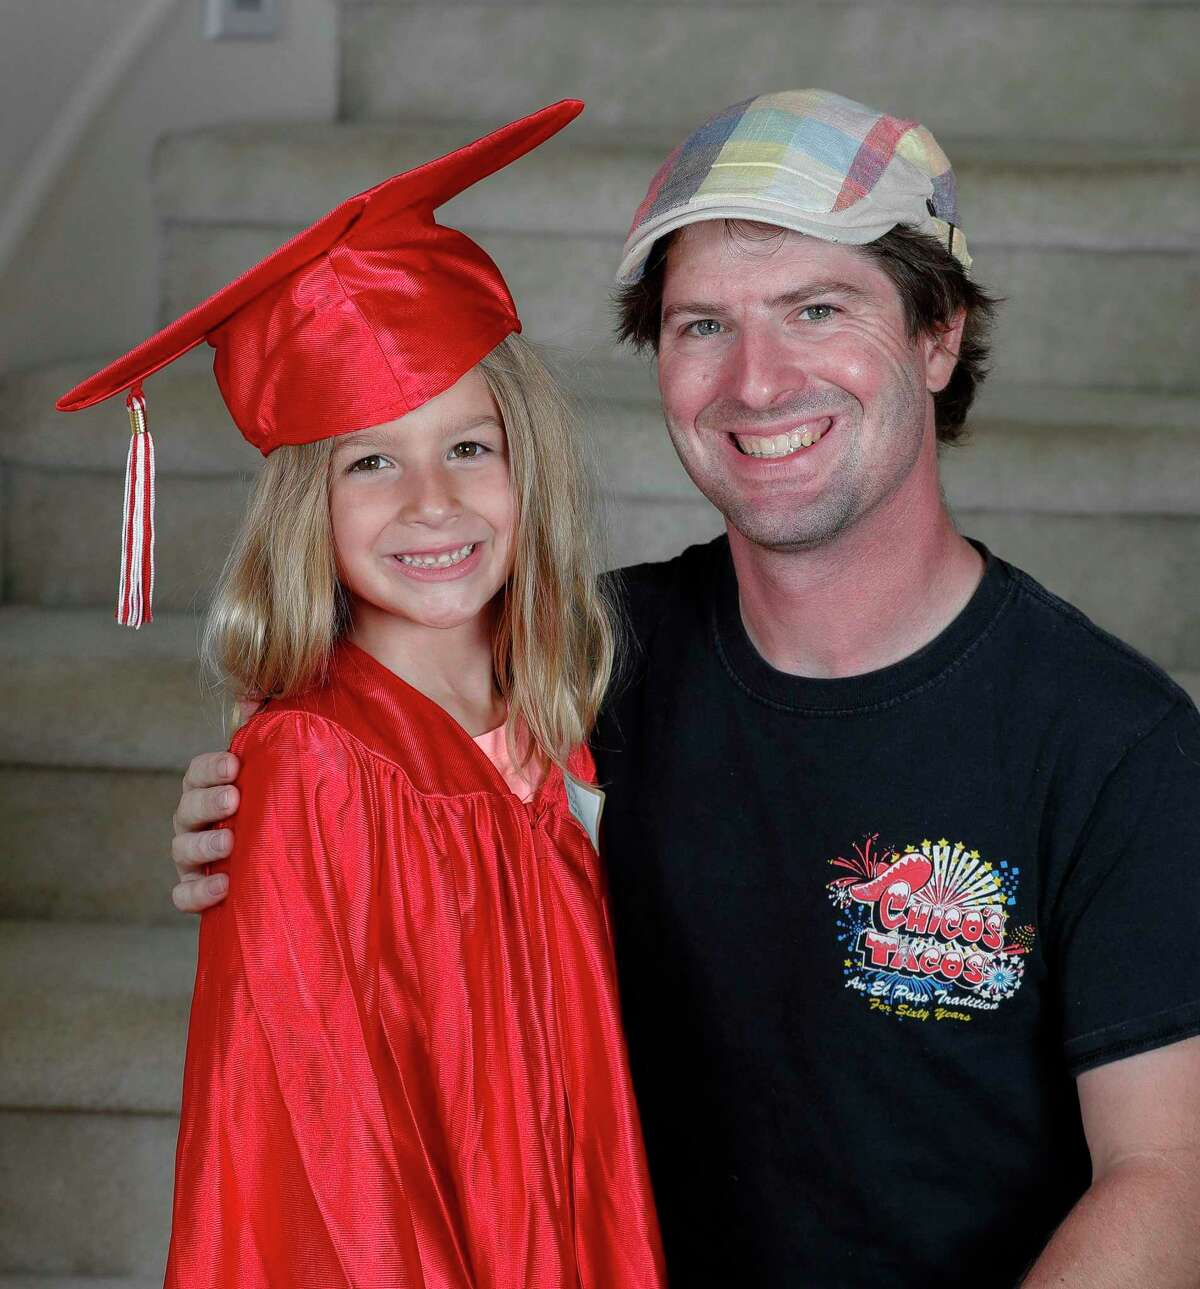 Courier photo editor Jason Fochtman is pictured with his oldest daughter, Emma, at her kindergarten graduation recently. He said his world became very small when she was born in the summer of 2014. Now he focuses on controling what he can control while covering floods, pandemics and more.